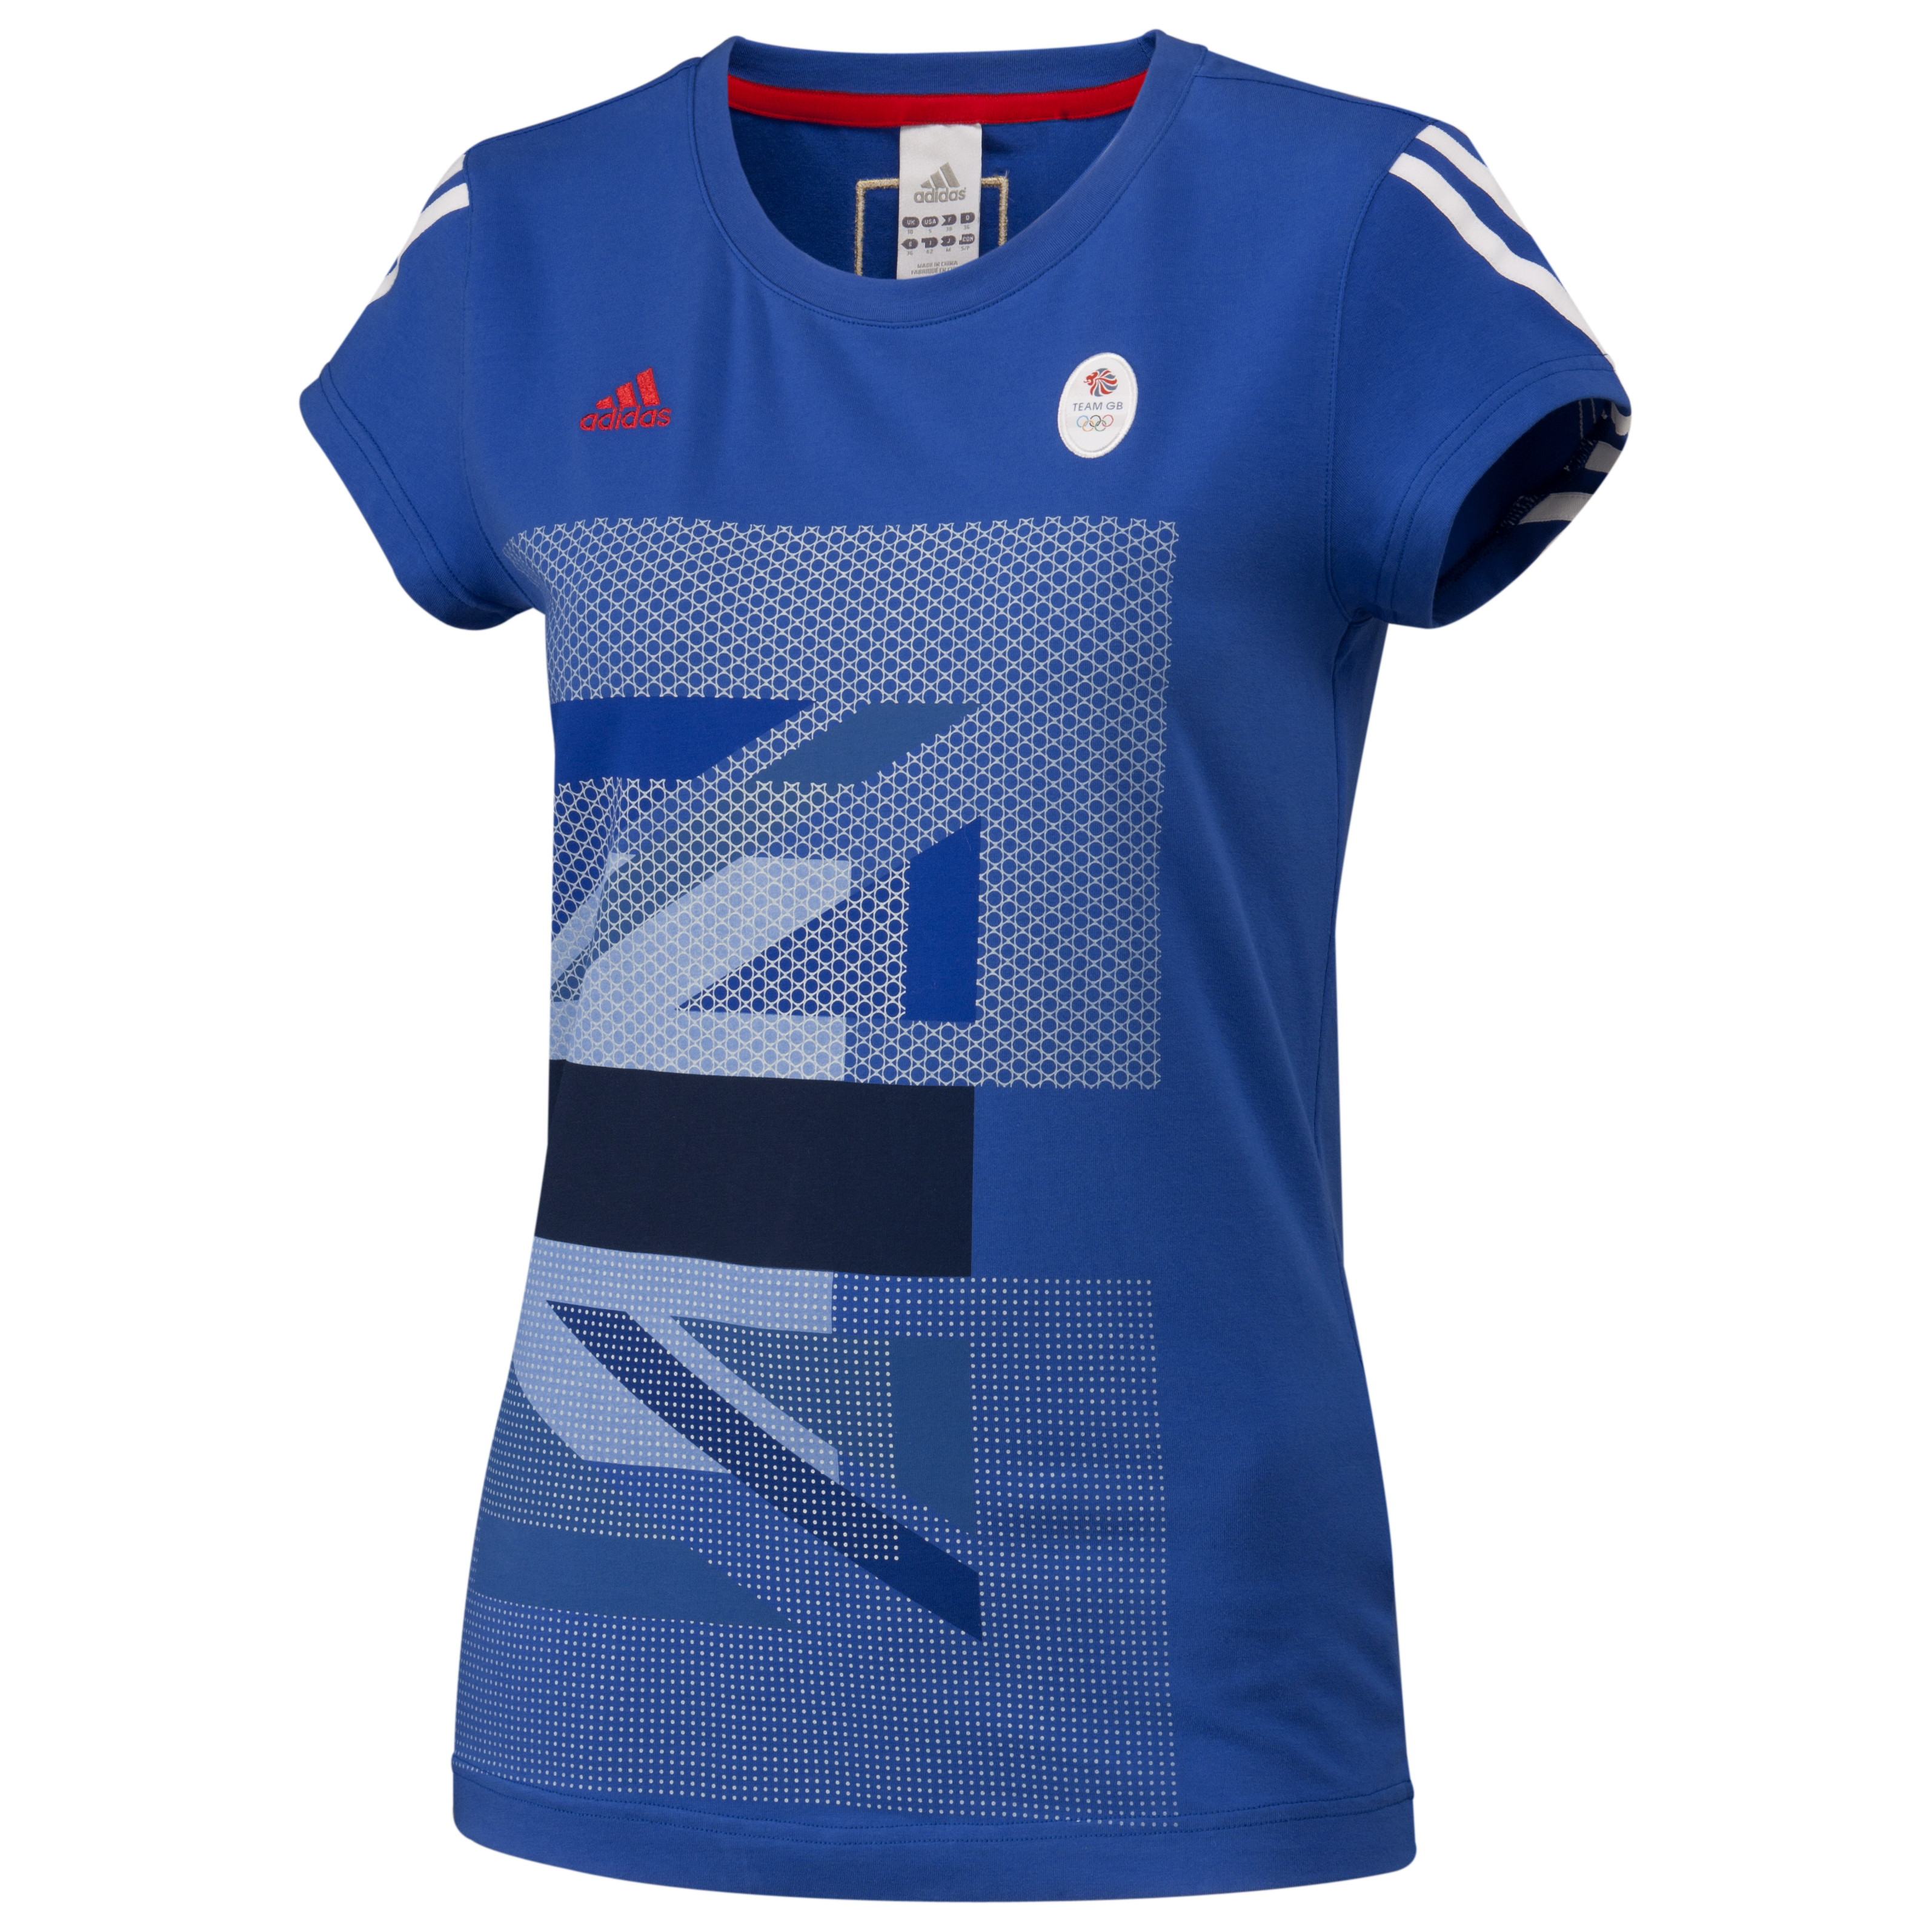 adidas Team GB Graphic T-Shirt - Victory Blue S07 - Women